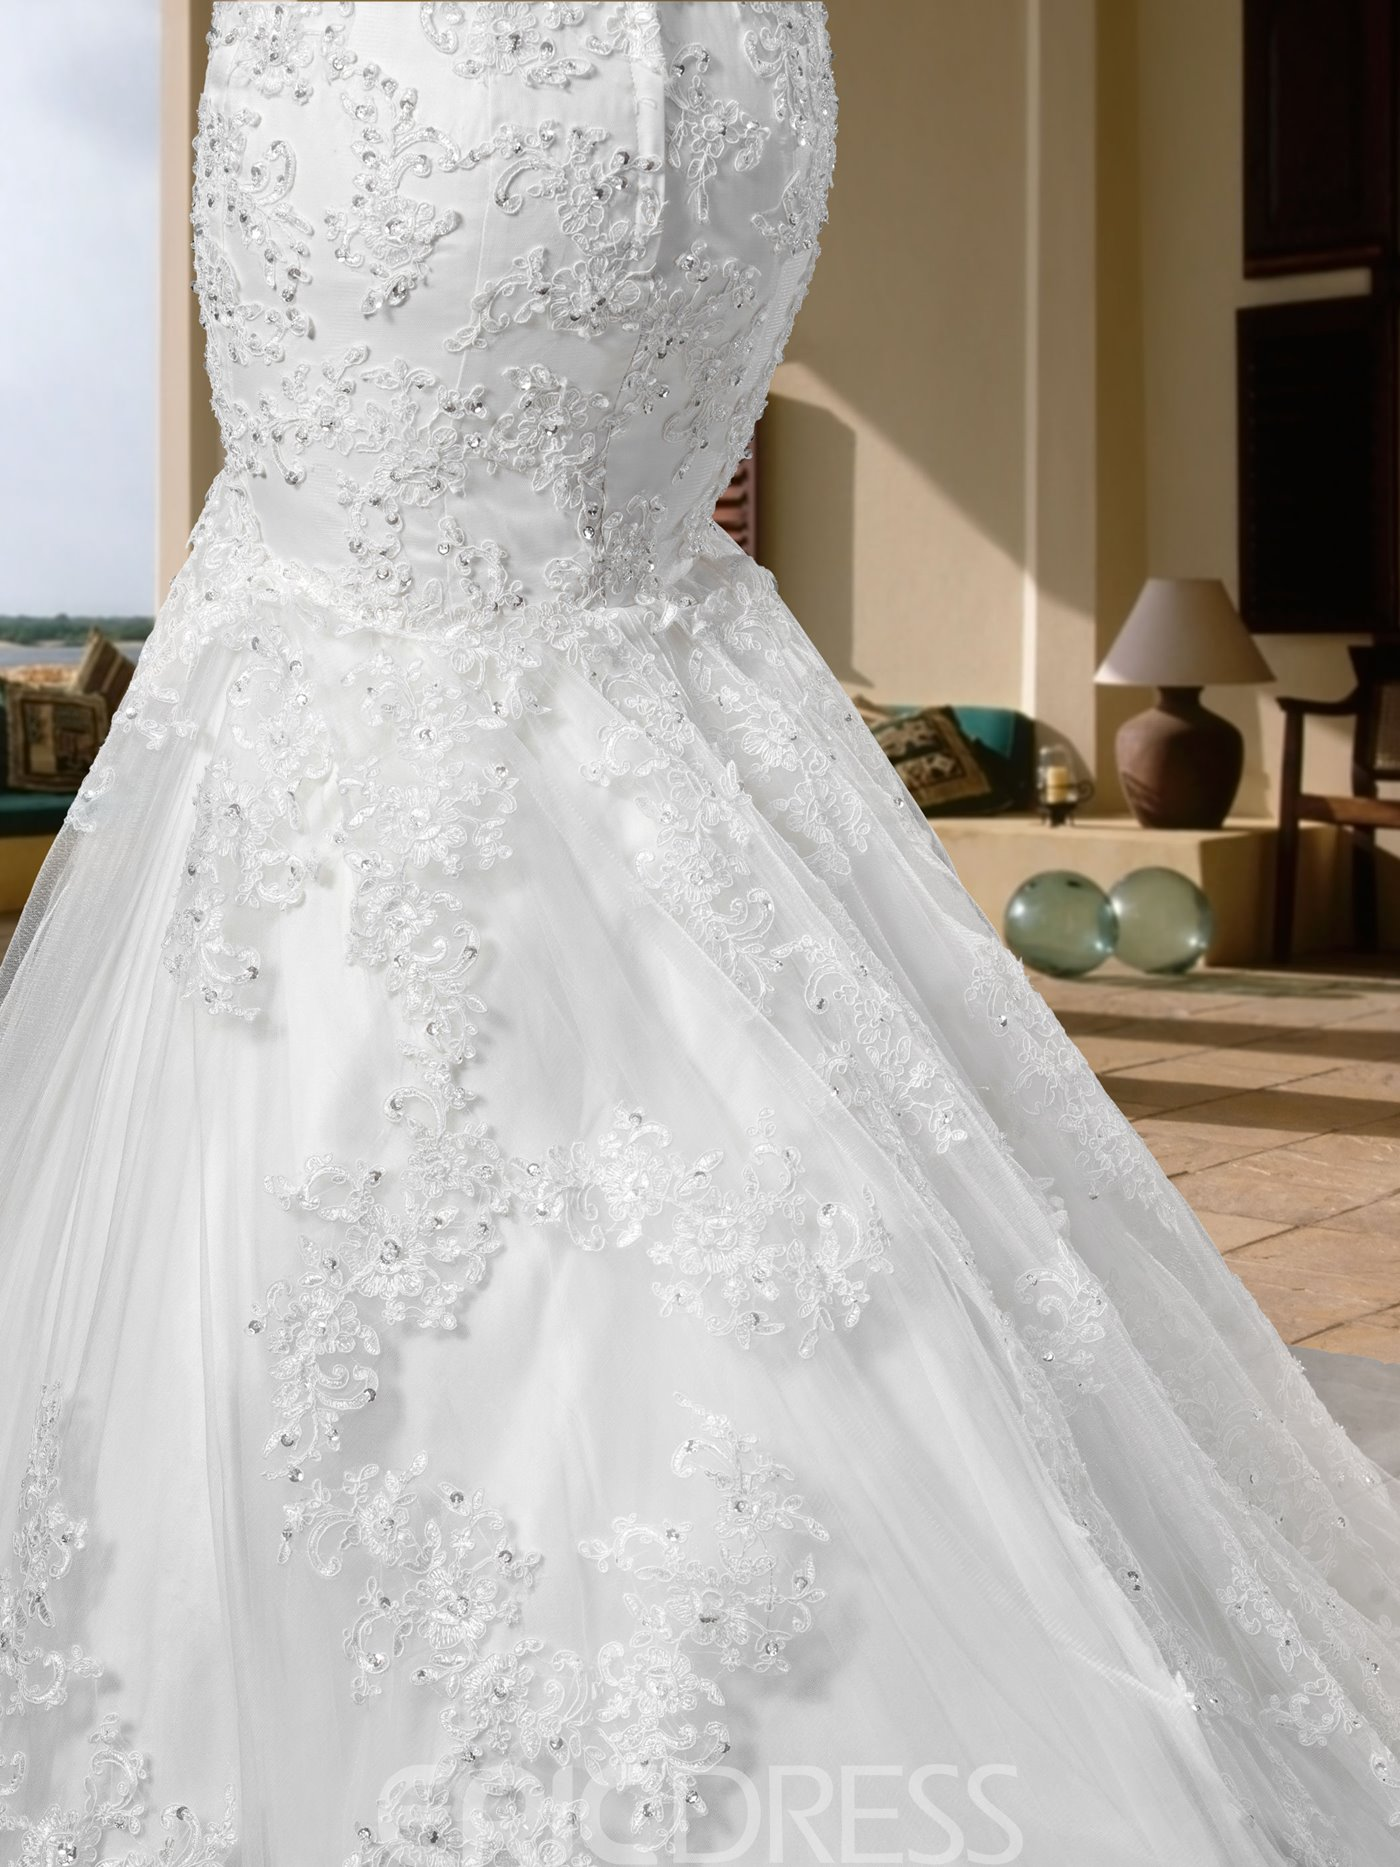 Gorgerous Sleeveless Scoop Appliques Trumpet Court Wedding Dress